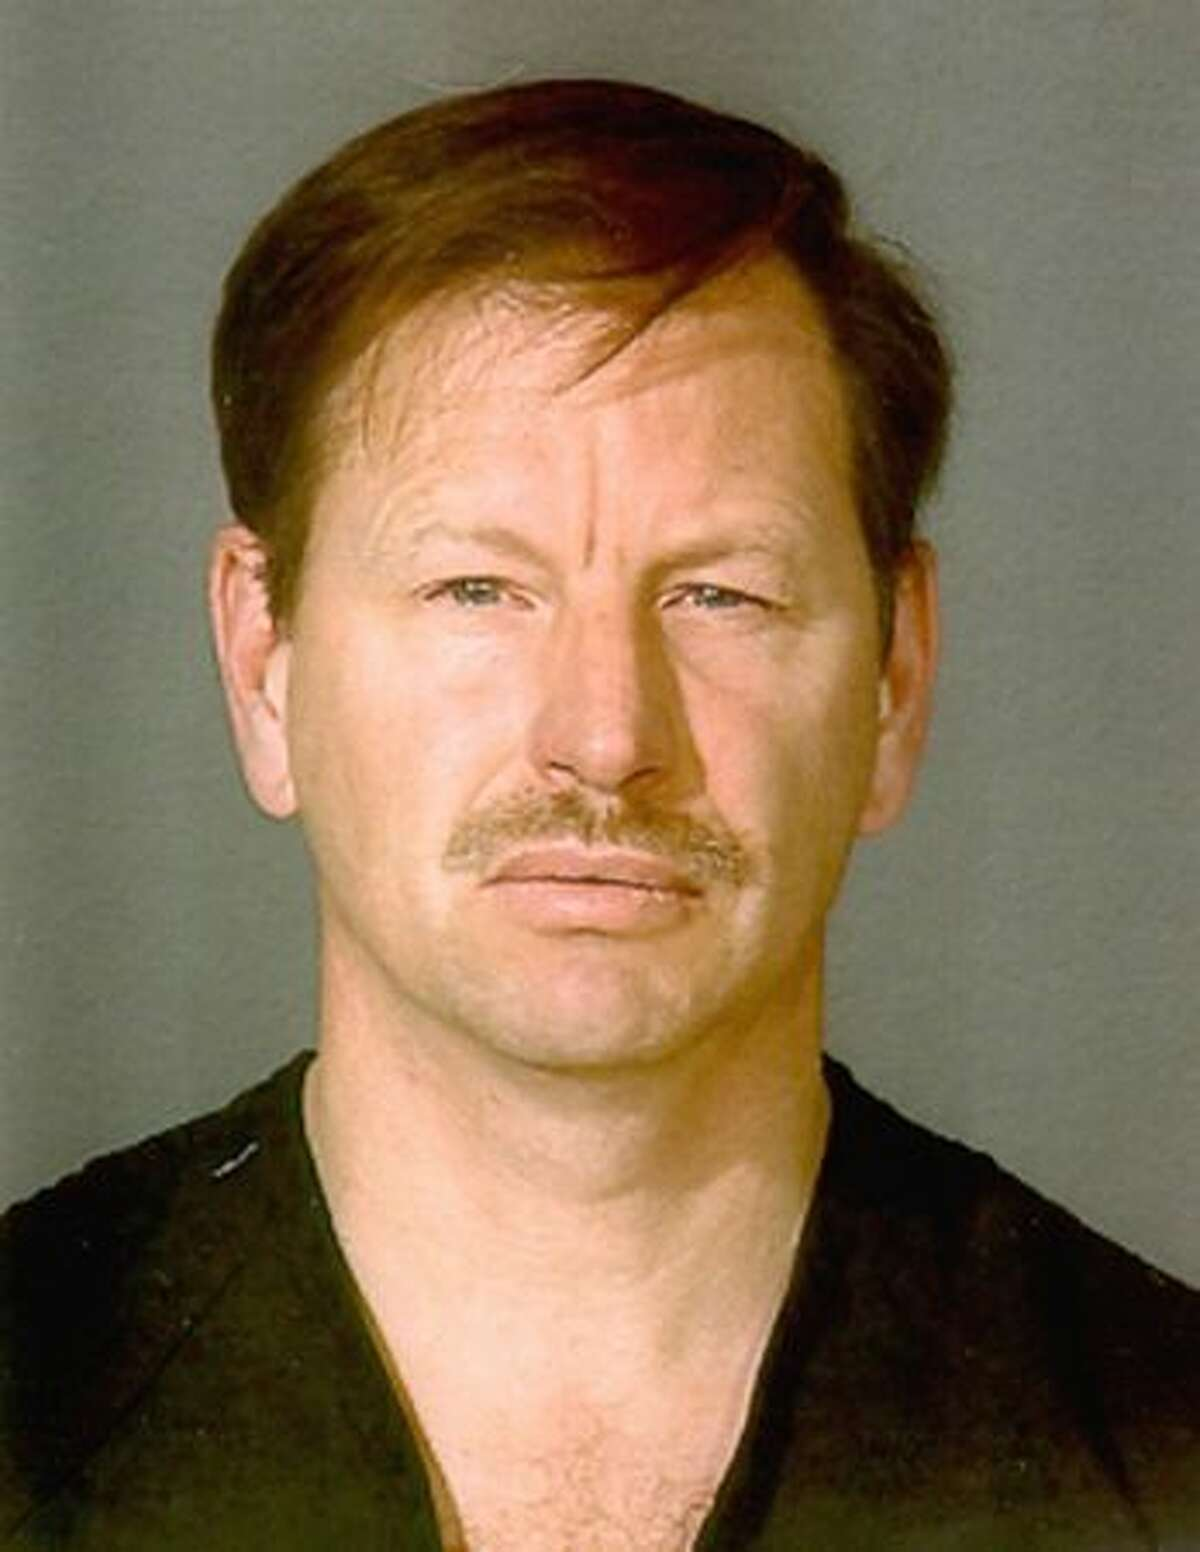 Gary Leon Ridgway is seen in this undated King County Sheriff's booking mug. Ridgway, 52, was arrested Nov. 30, 2001 for investigation of homicide in the deaths of four women slain in 1982 by the so-called Green River Killer, the King County sheriff said. (AP Photo/King County Sheriff's Dept.)